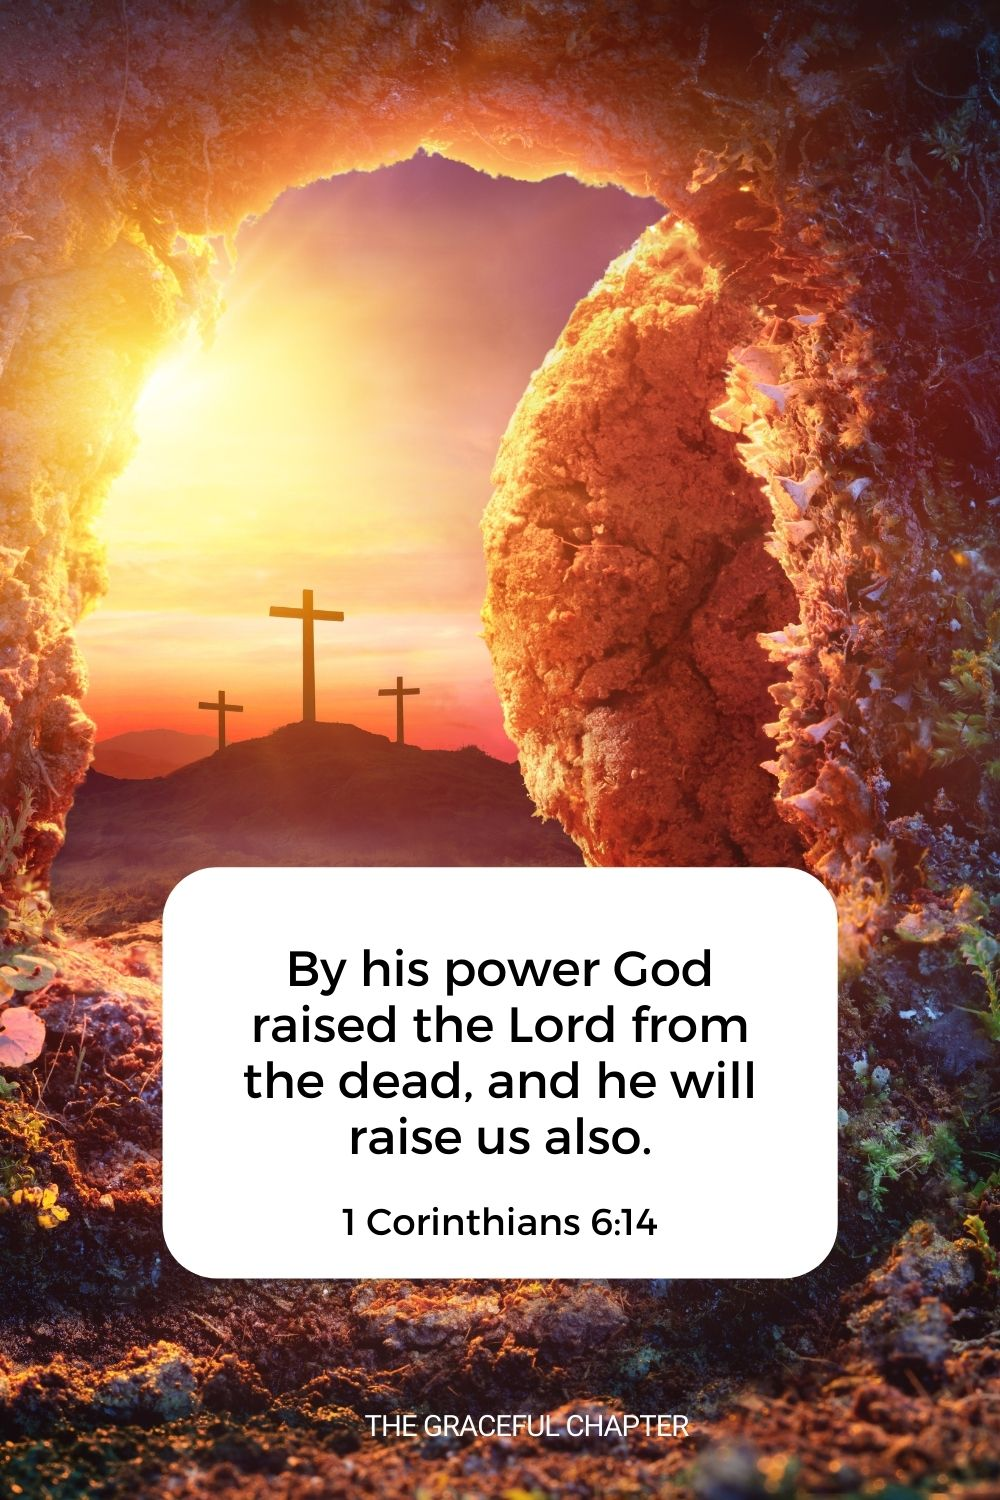 By his power, God raised the Lord from the dead, and he will raise us also. 1 Corinthians 6:14